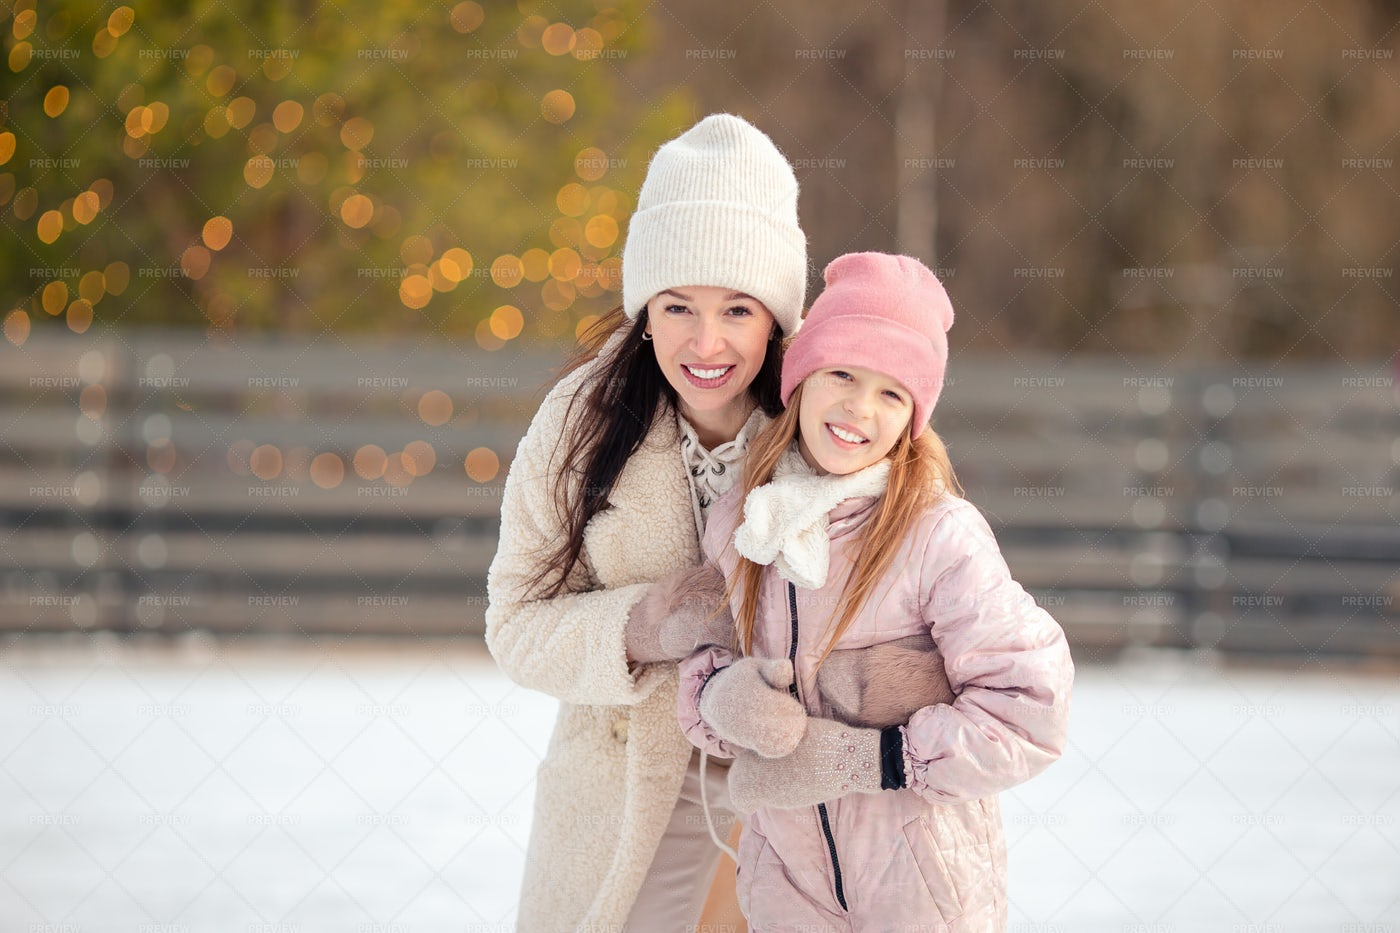 Hugging On Ice Rink: Stock Photos